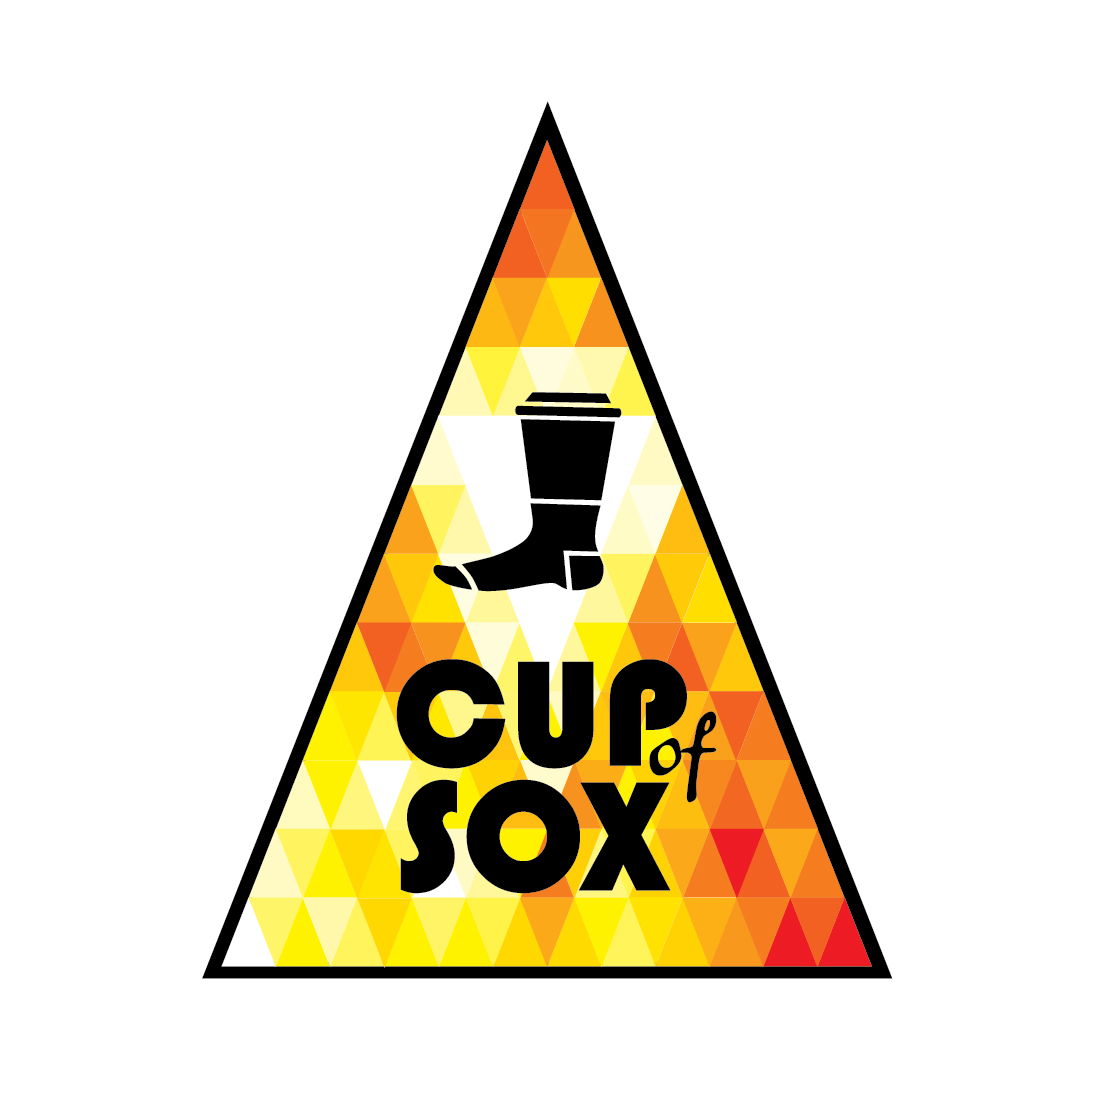 Cupofsox